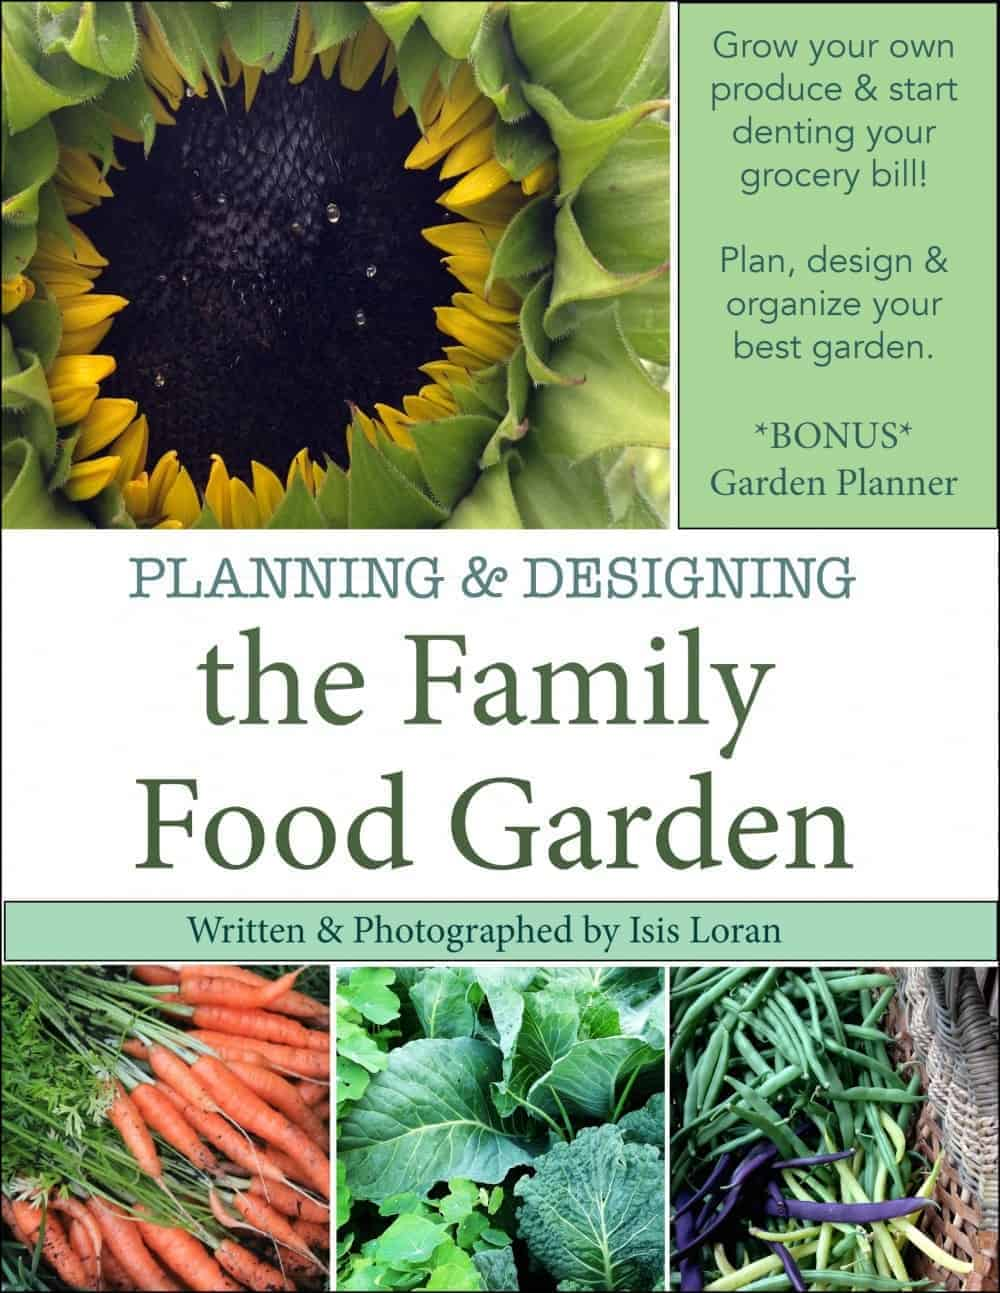 Grow more food & have better organization: Planning & Designing the Family Food Garden